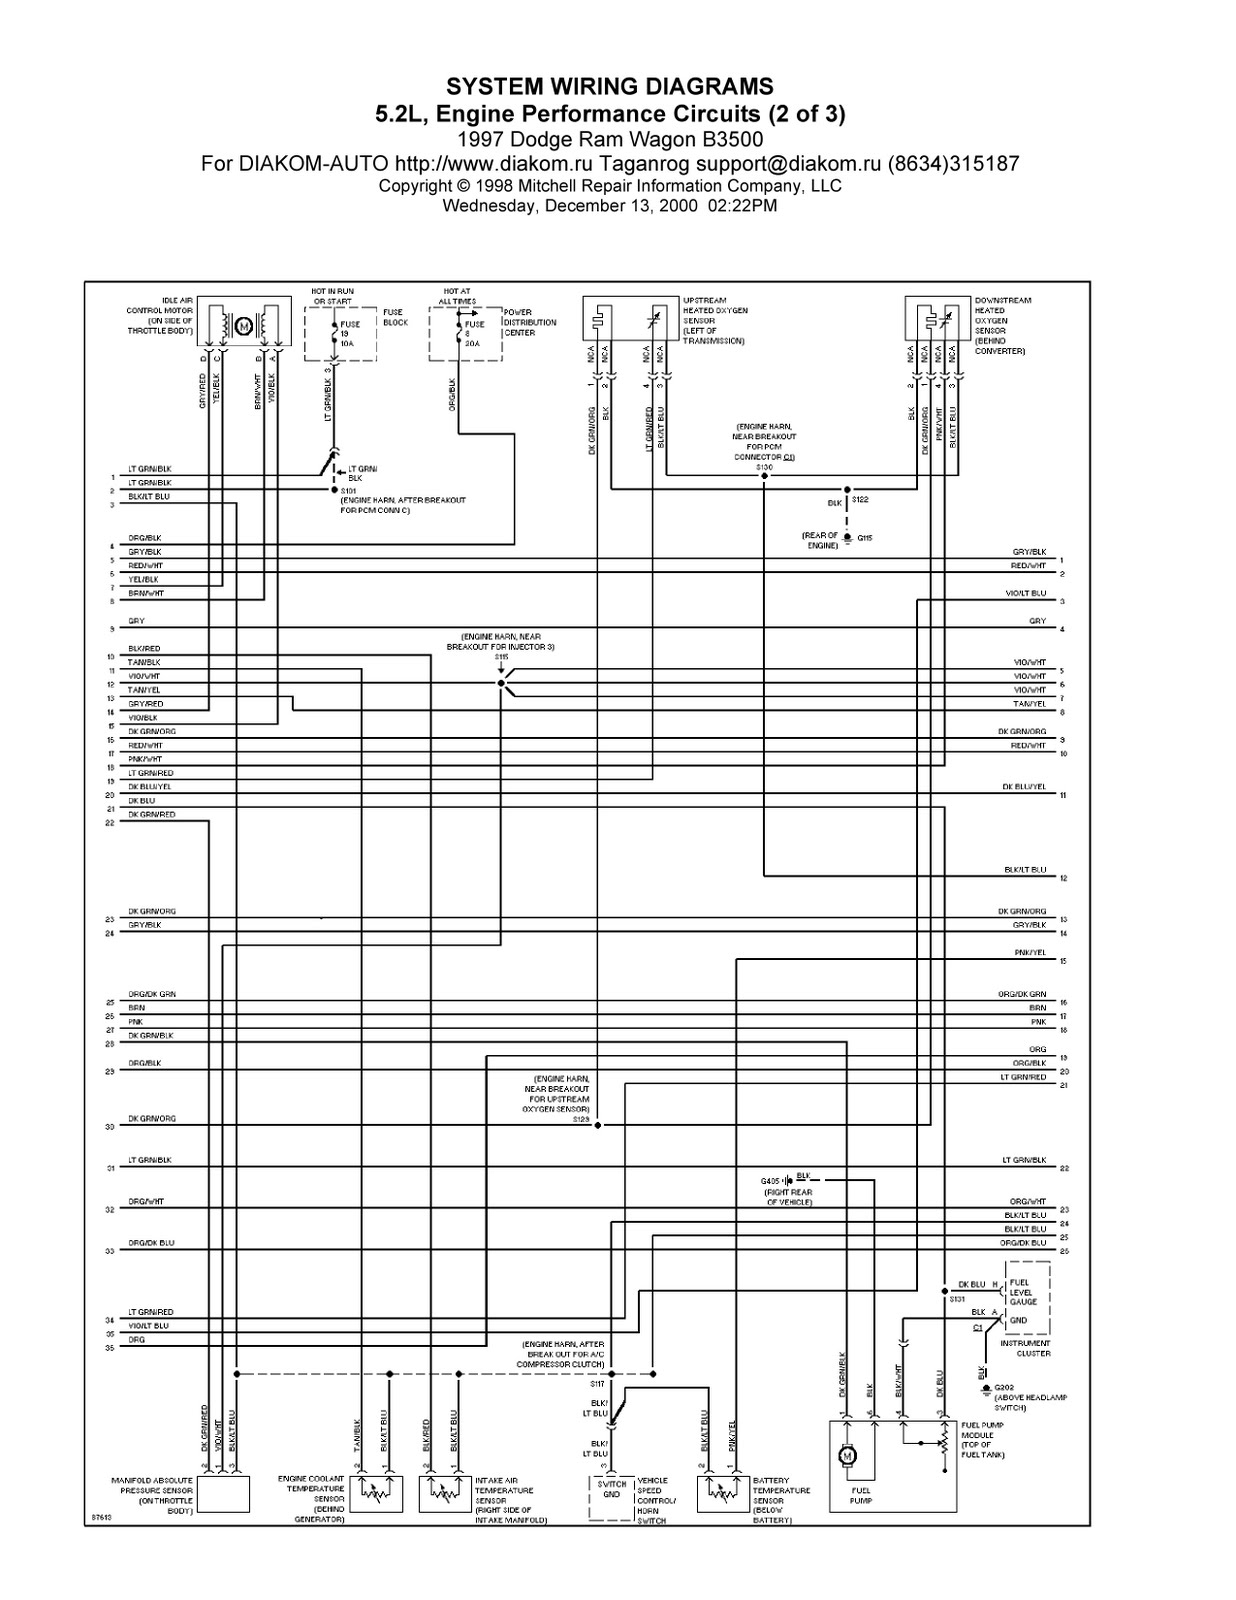 2001 Dodge Ram 2500 Wiring Diagram